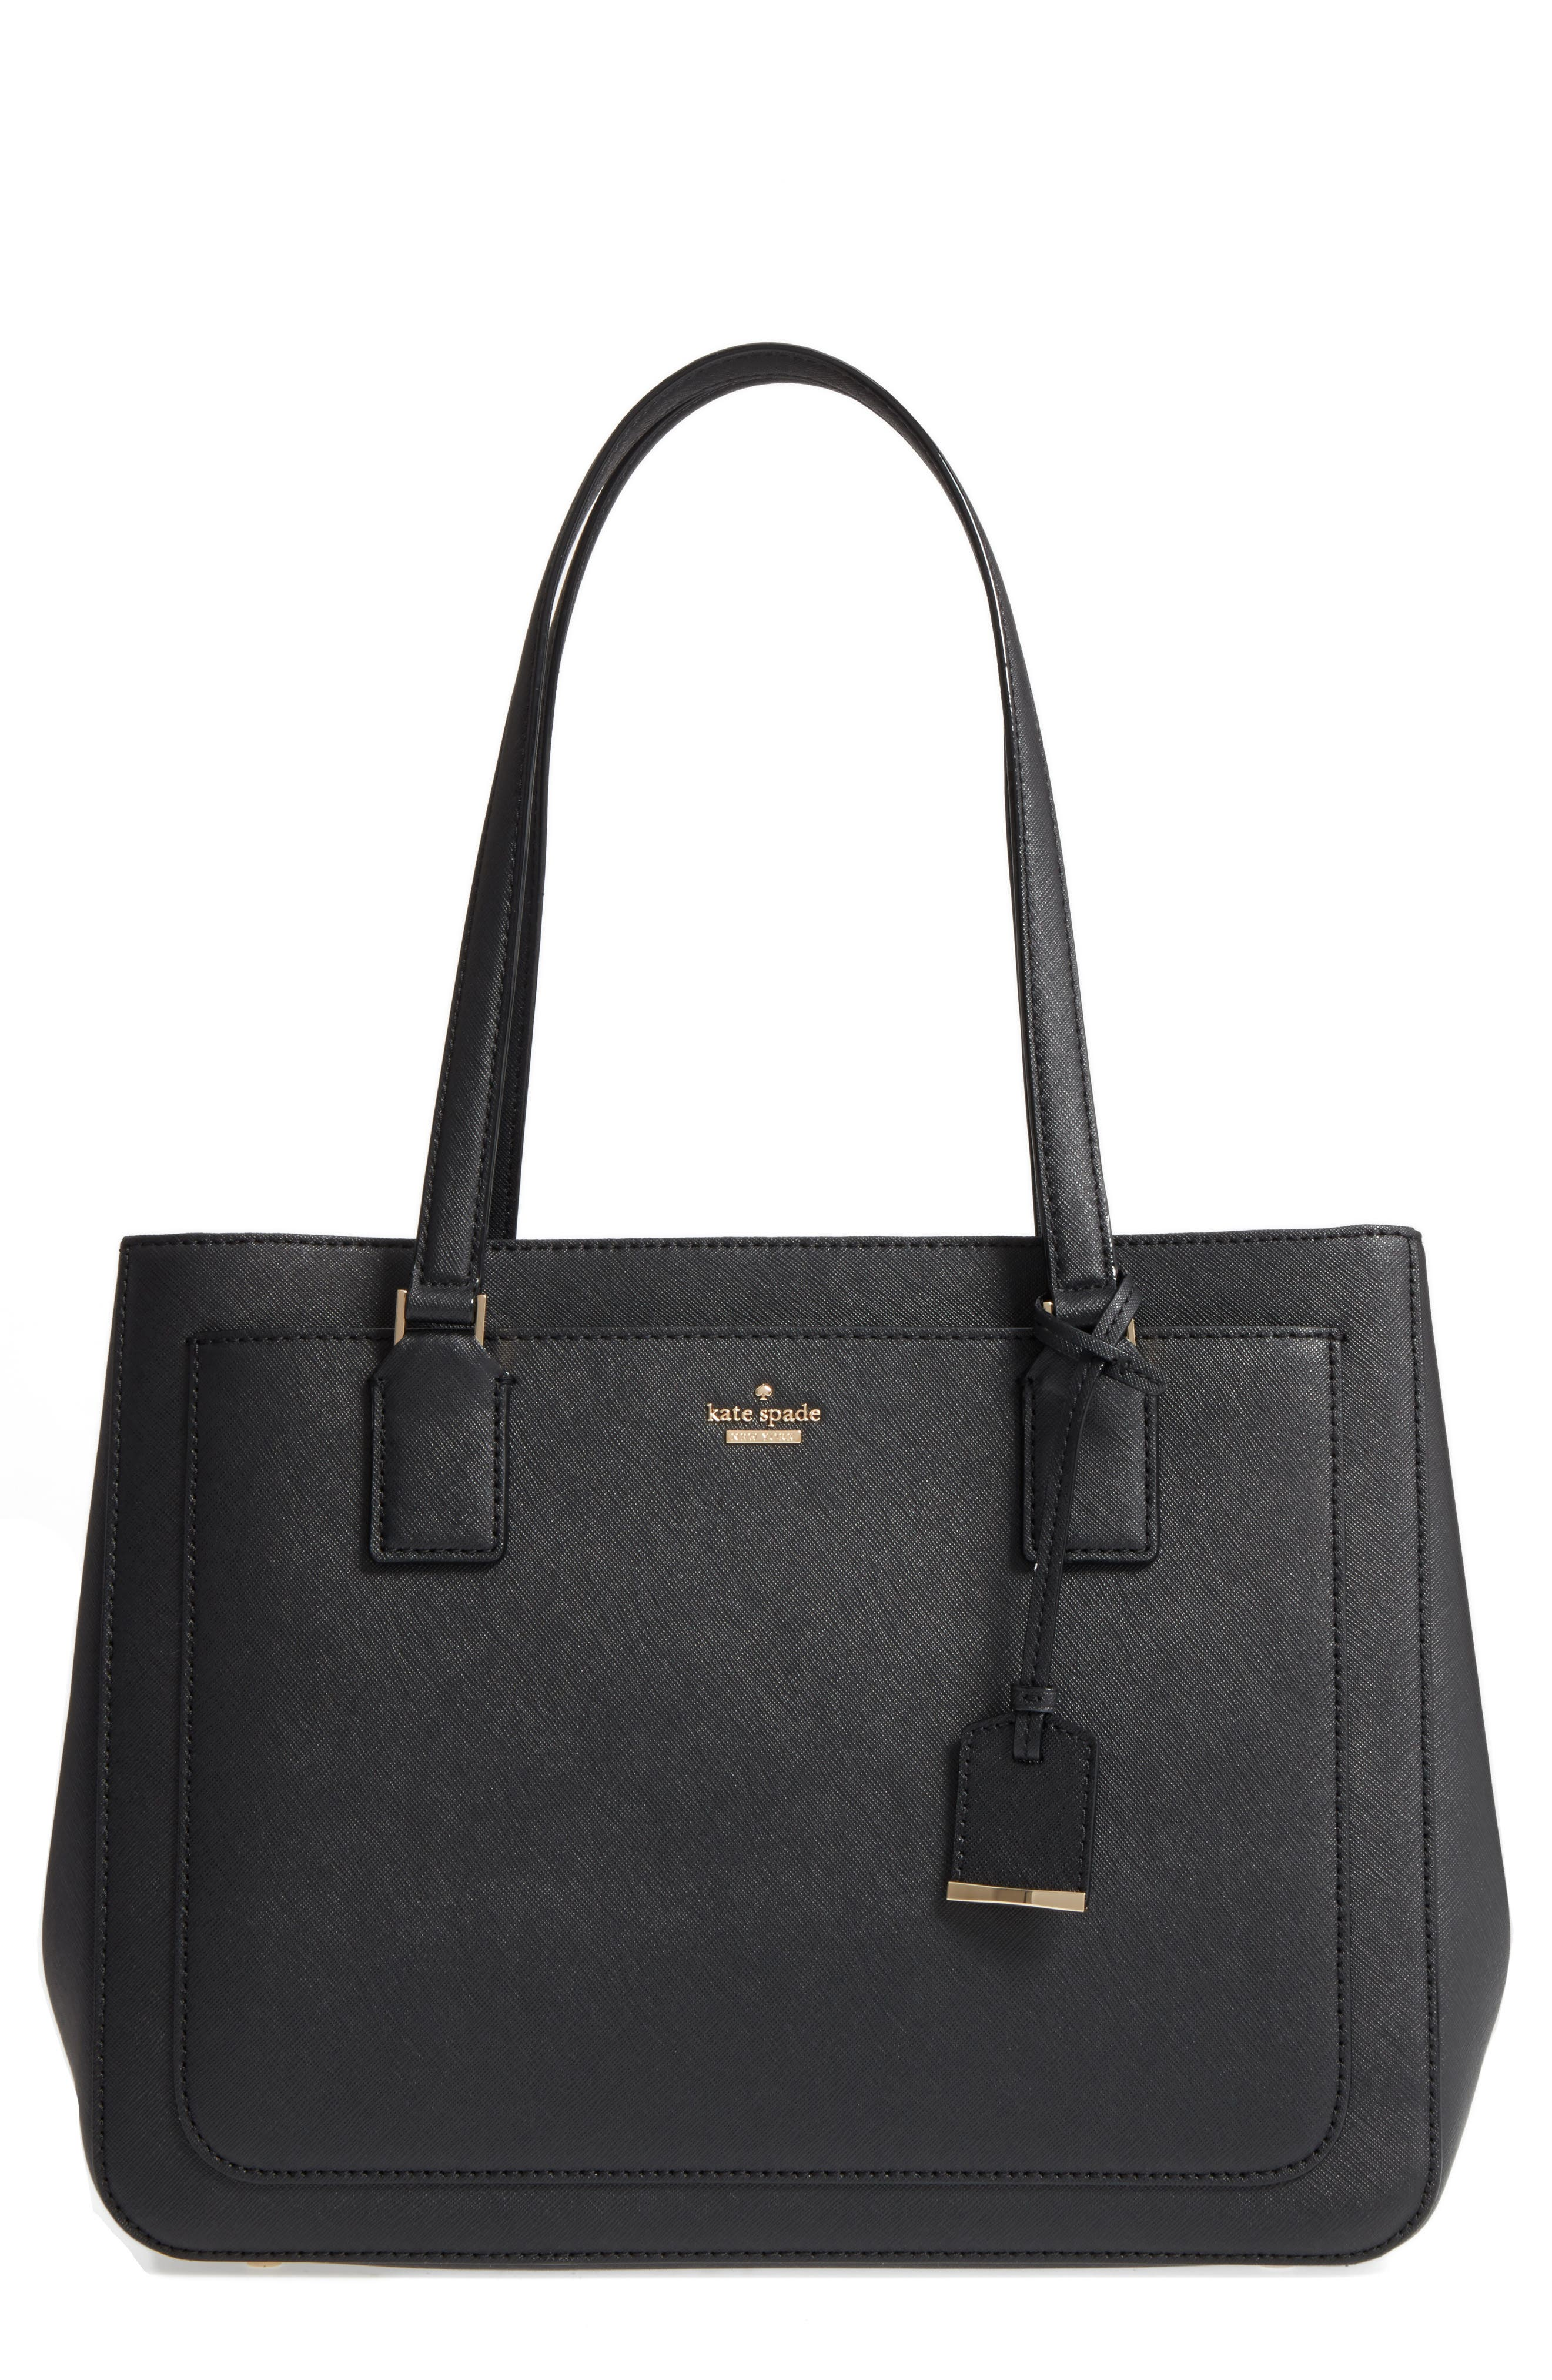 cameron street - zooey leather tote,                         Main,                         color, Black